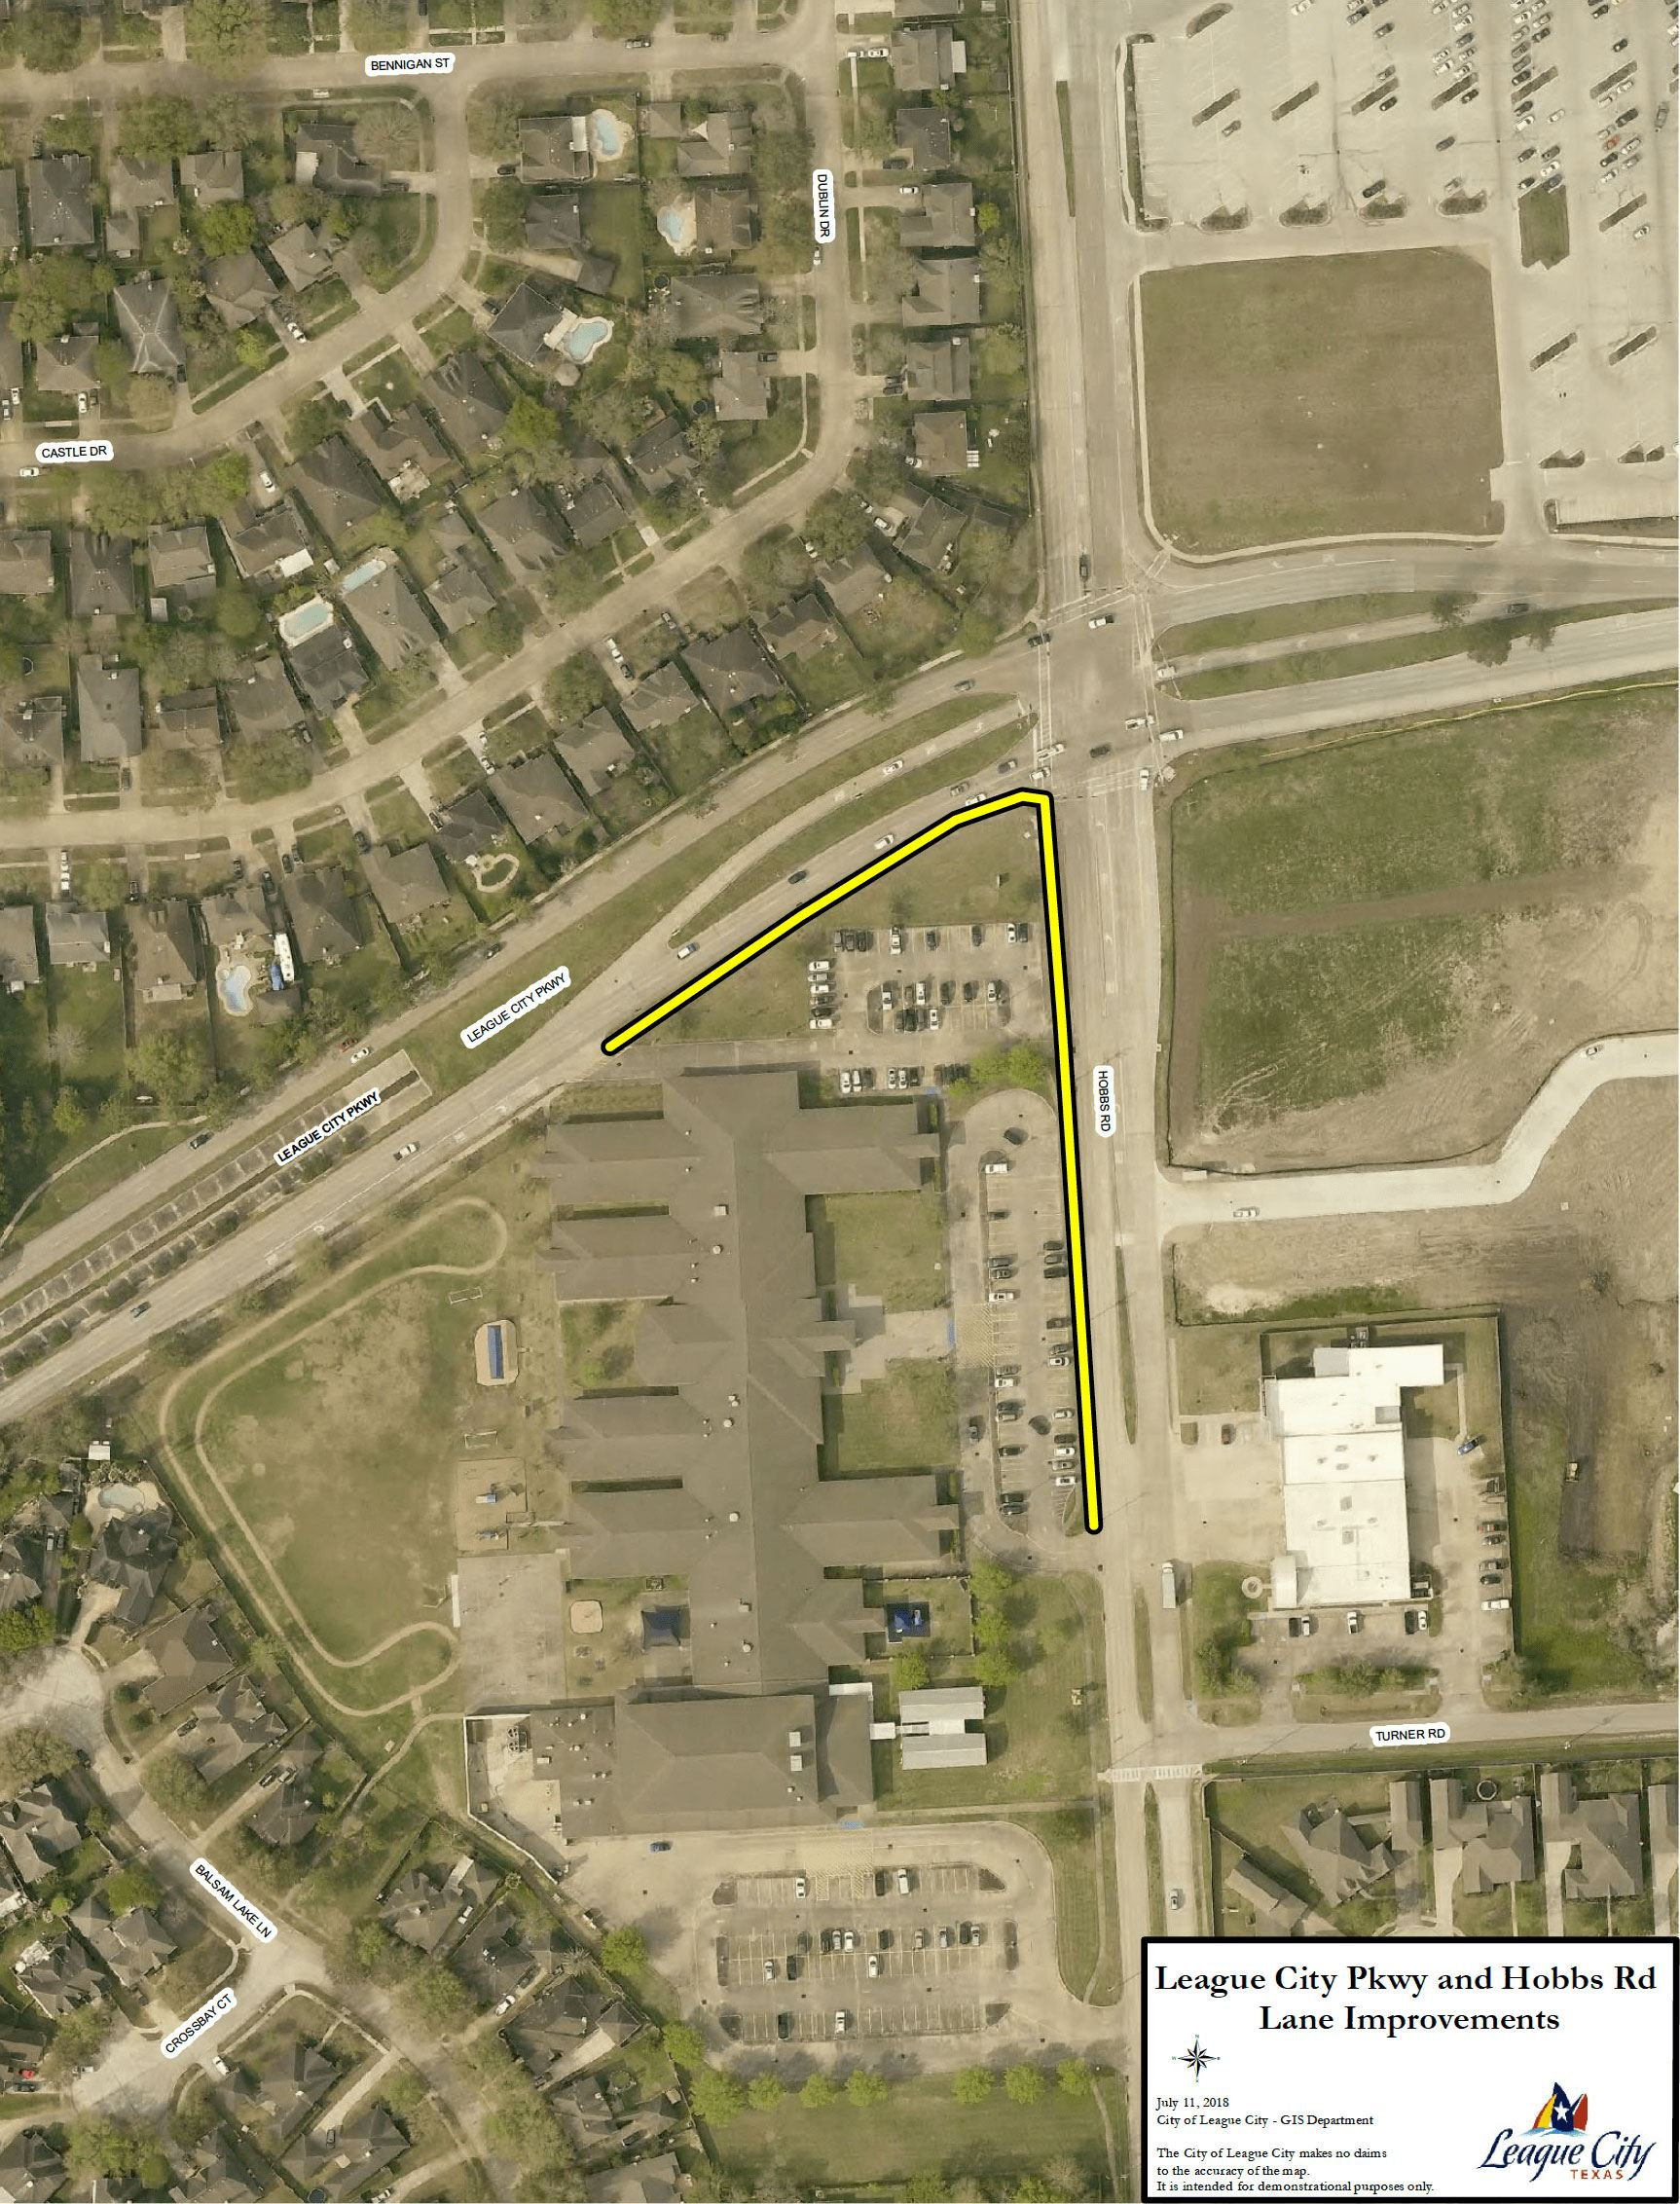 League City Parkway and Hobbs Road Lane Improvements aerial map